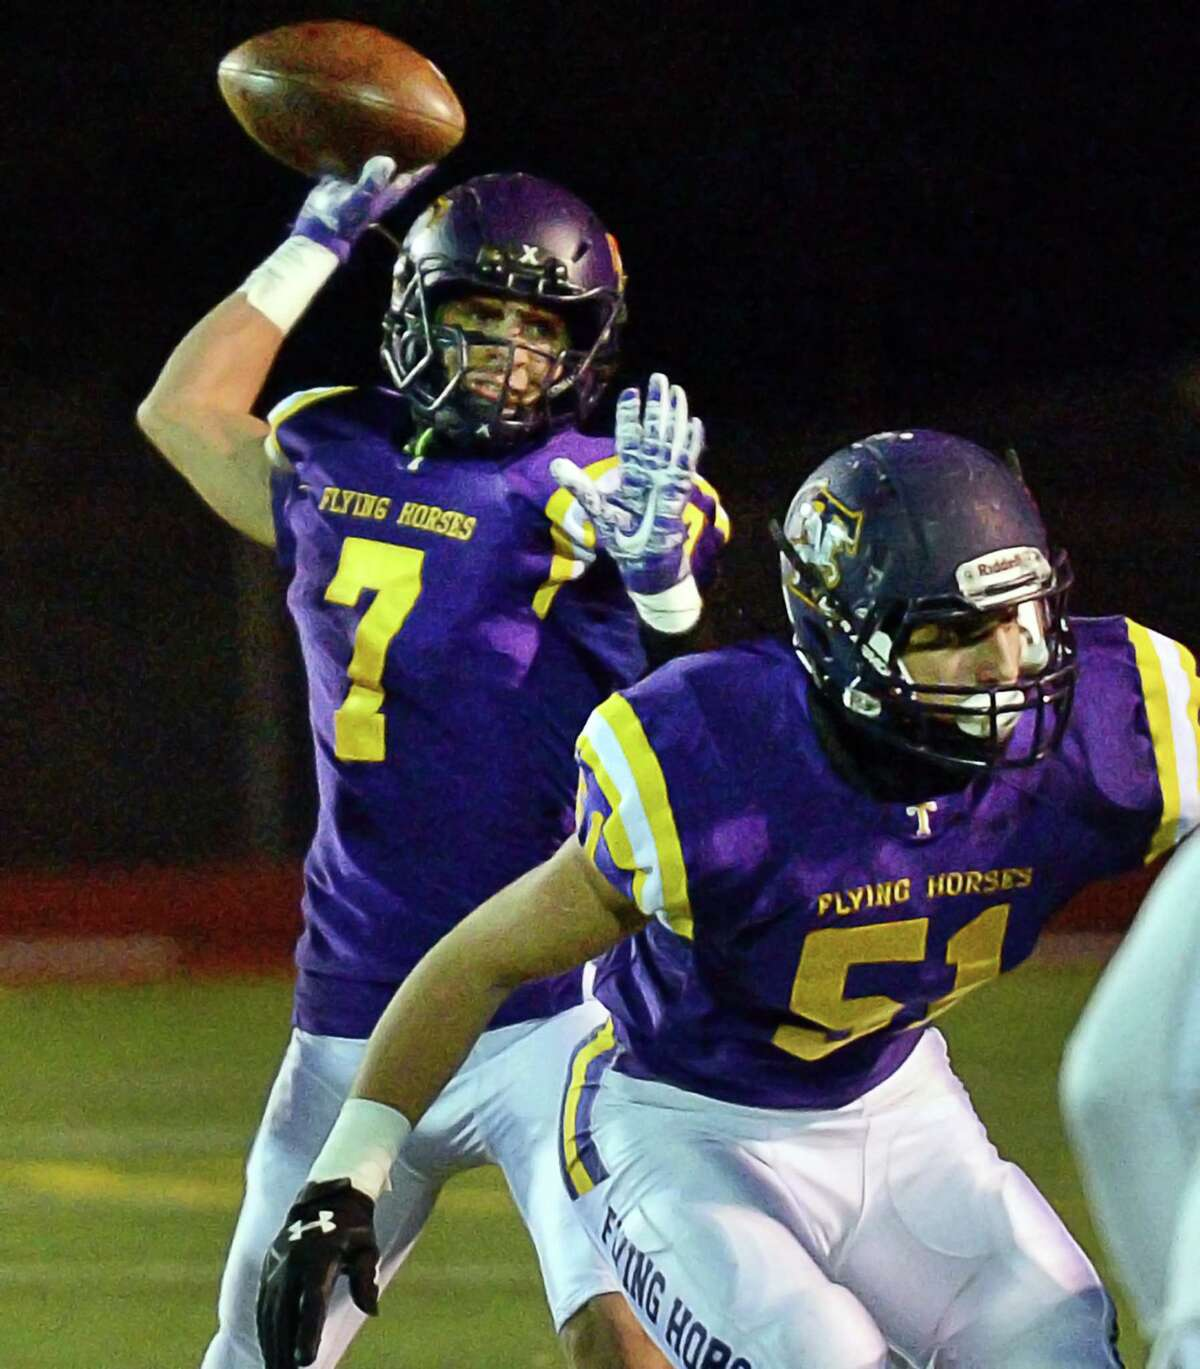 Troy QB #7 Joe Casale, left, gets off a pass as #51Derrick Cipriani provides protection during their Class AA quarterfinal game against New Rochelle Friday Nov. 10, 2017 in East Greenbush, NY. (John Carl D'Annibale / Times Union)